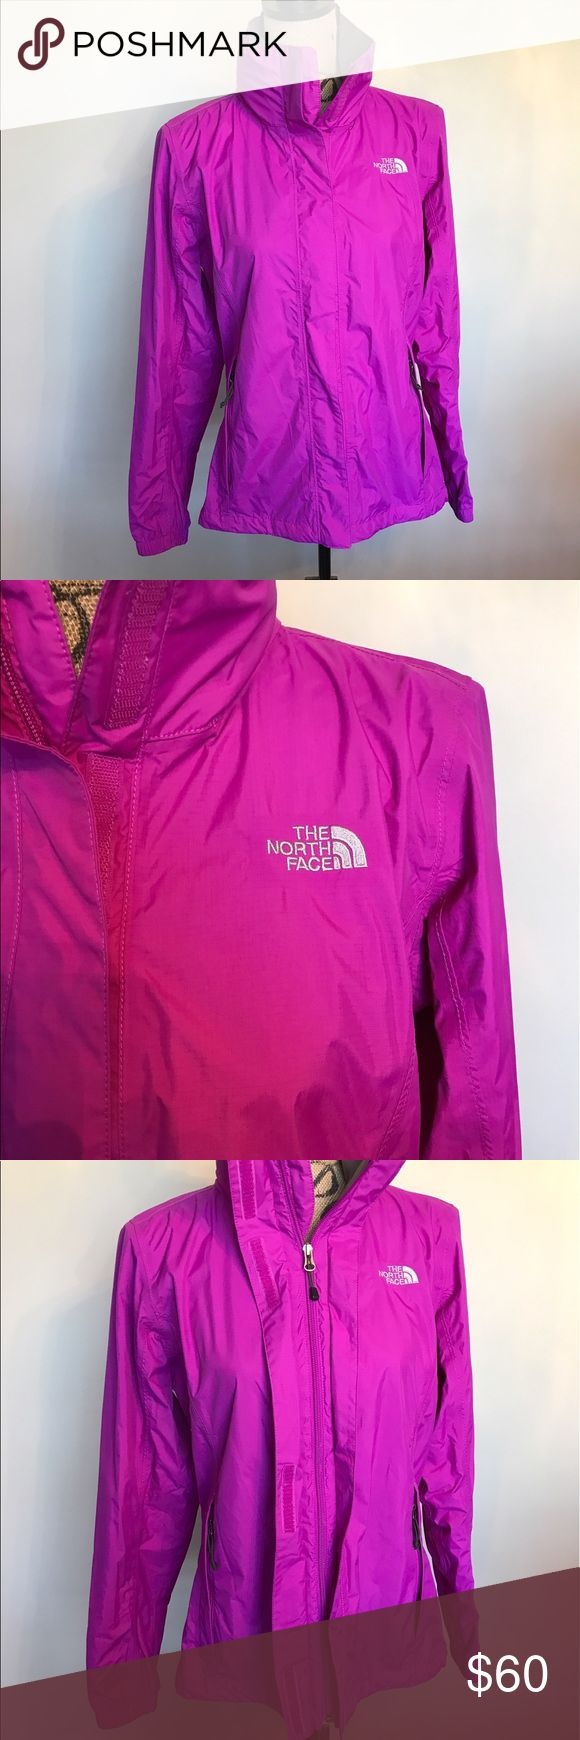 North face rain jacket w/hood or tuck it in Worn once🎉 Please ask for additional pictures, measurements, or ask questions before purchase. 🎉 No trades or other apps 🎉 Ships next business day, unless noted in my closet  🎉 Bundle for discount North Face Jackets & Coats